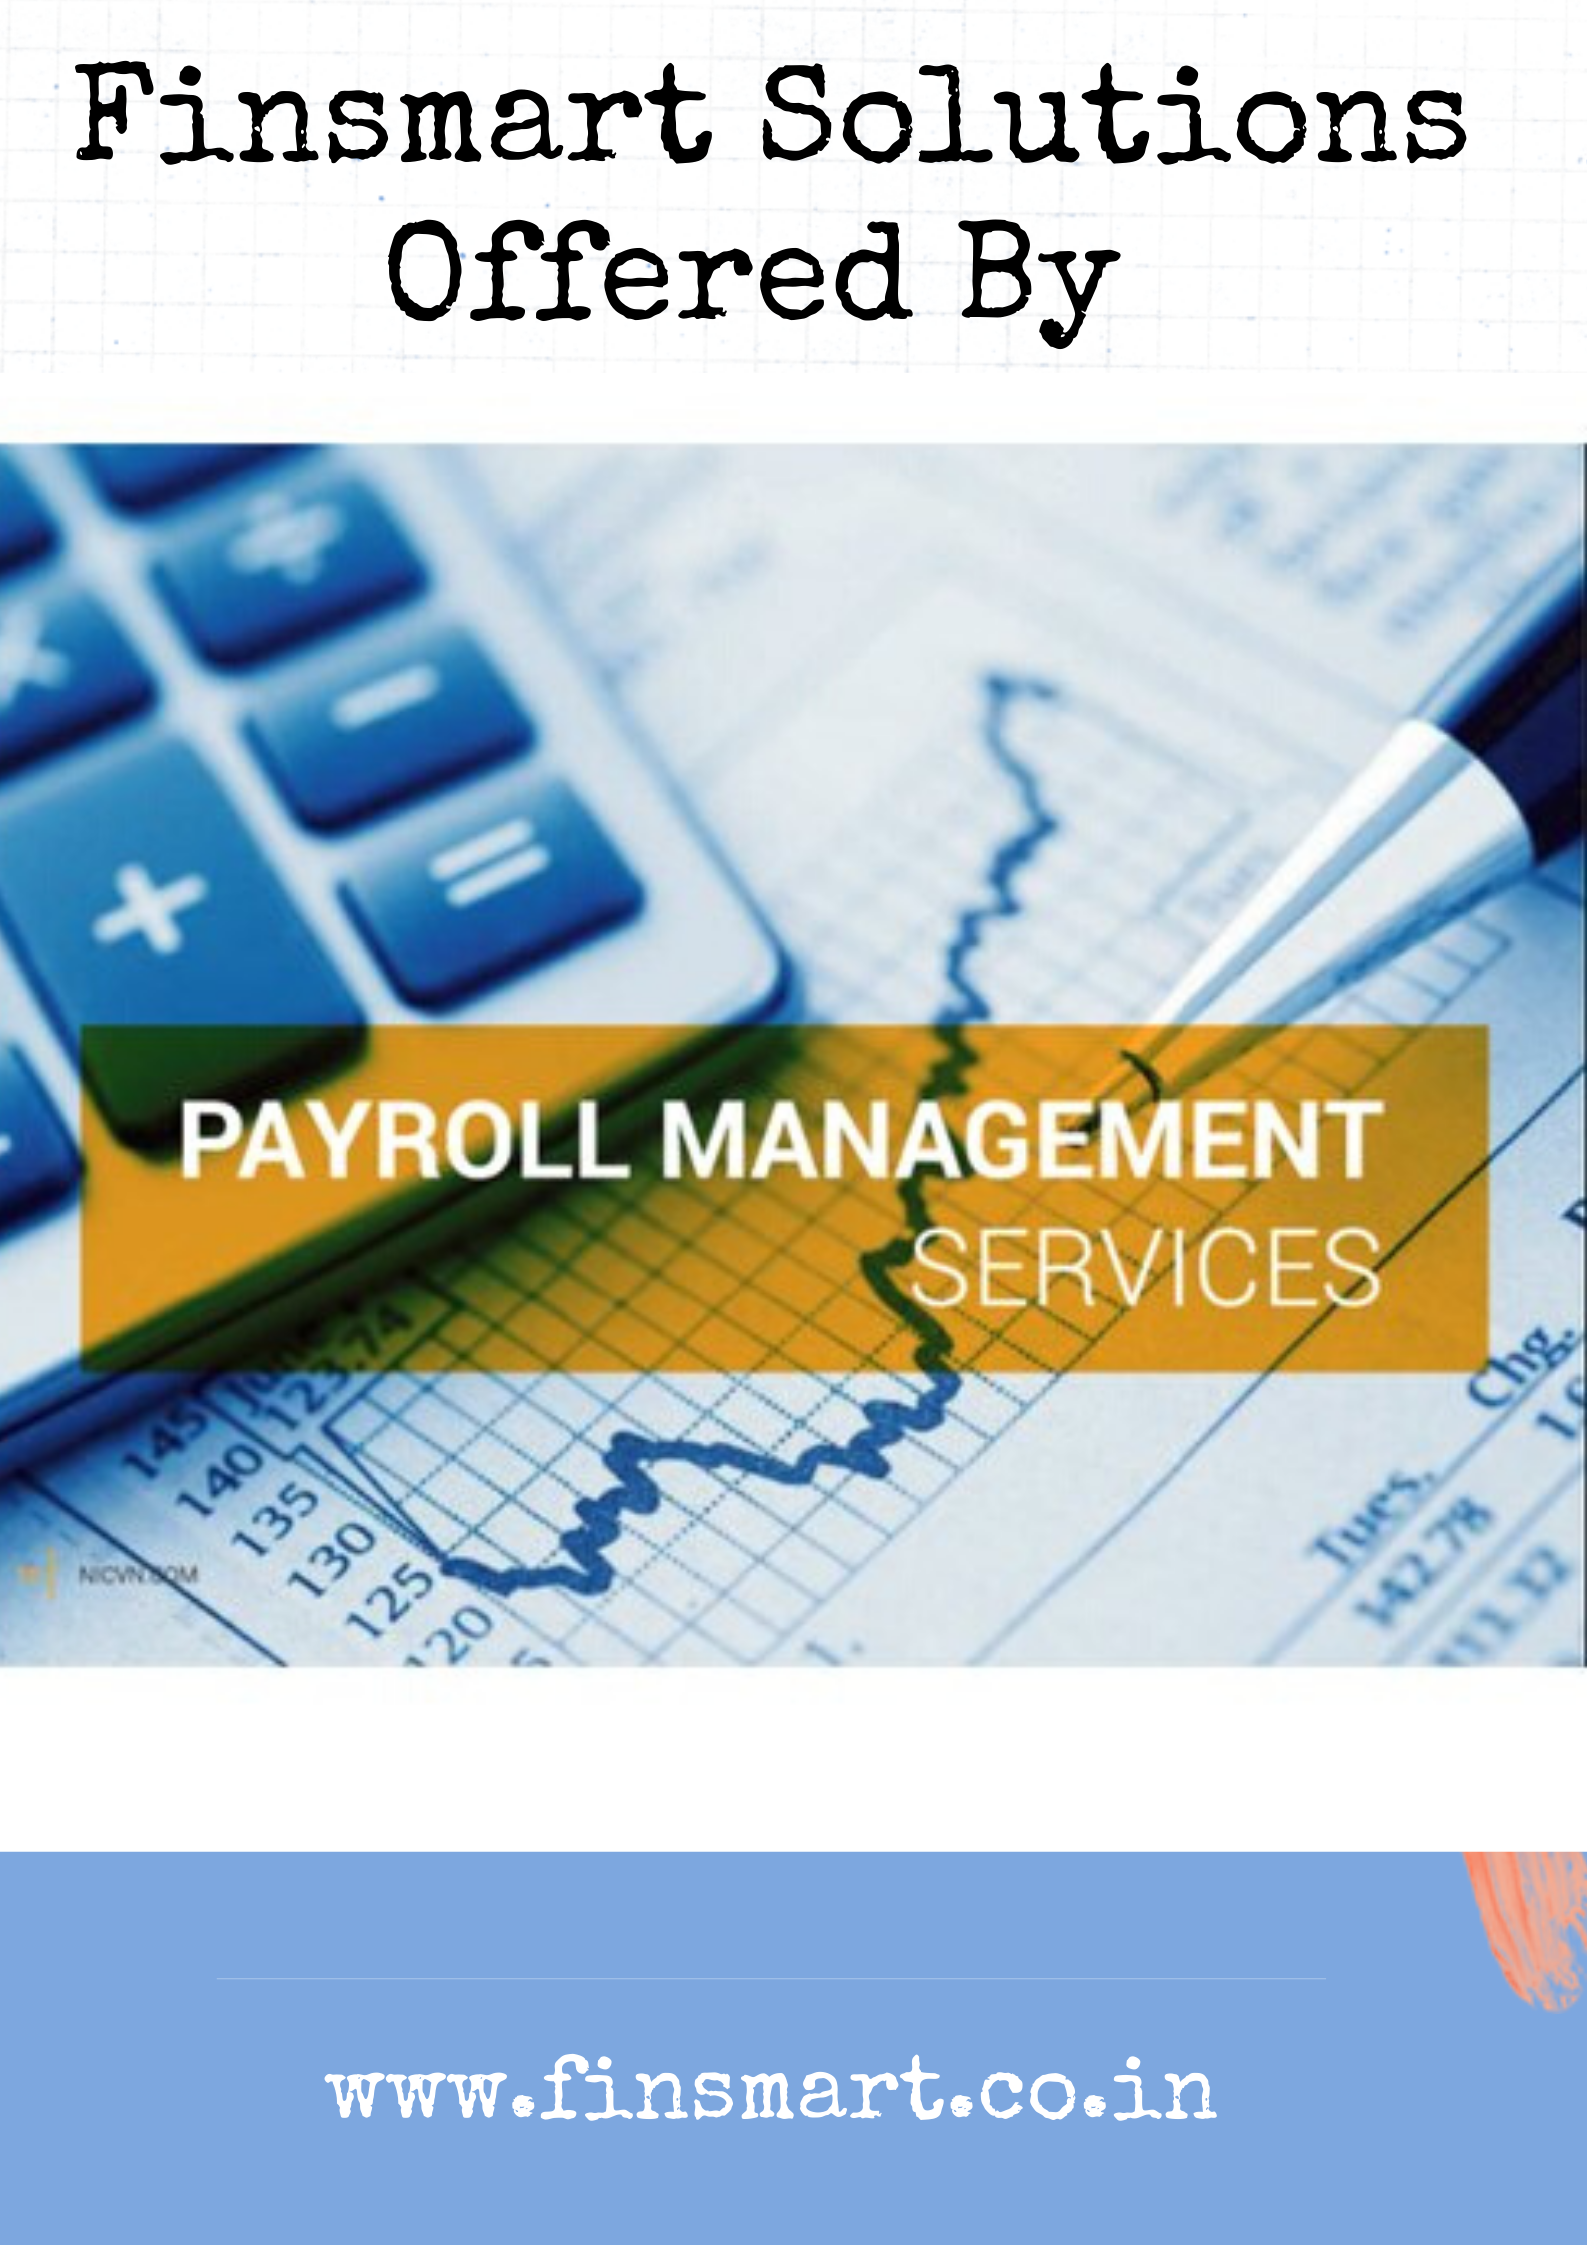 Finsmart Solutions is leading Payroll outsourcing company ...